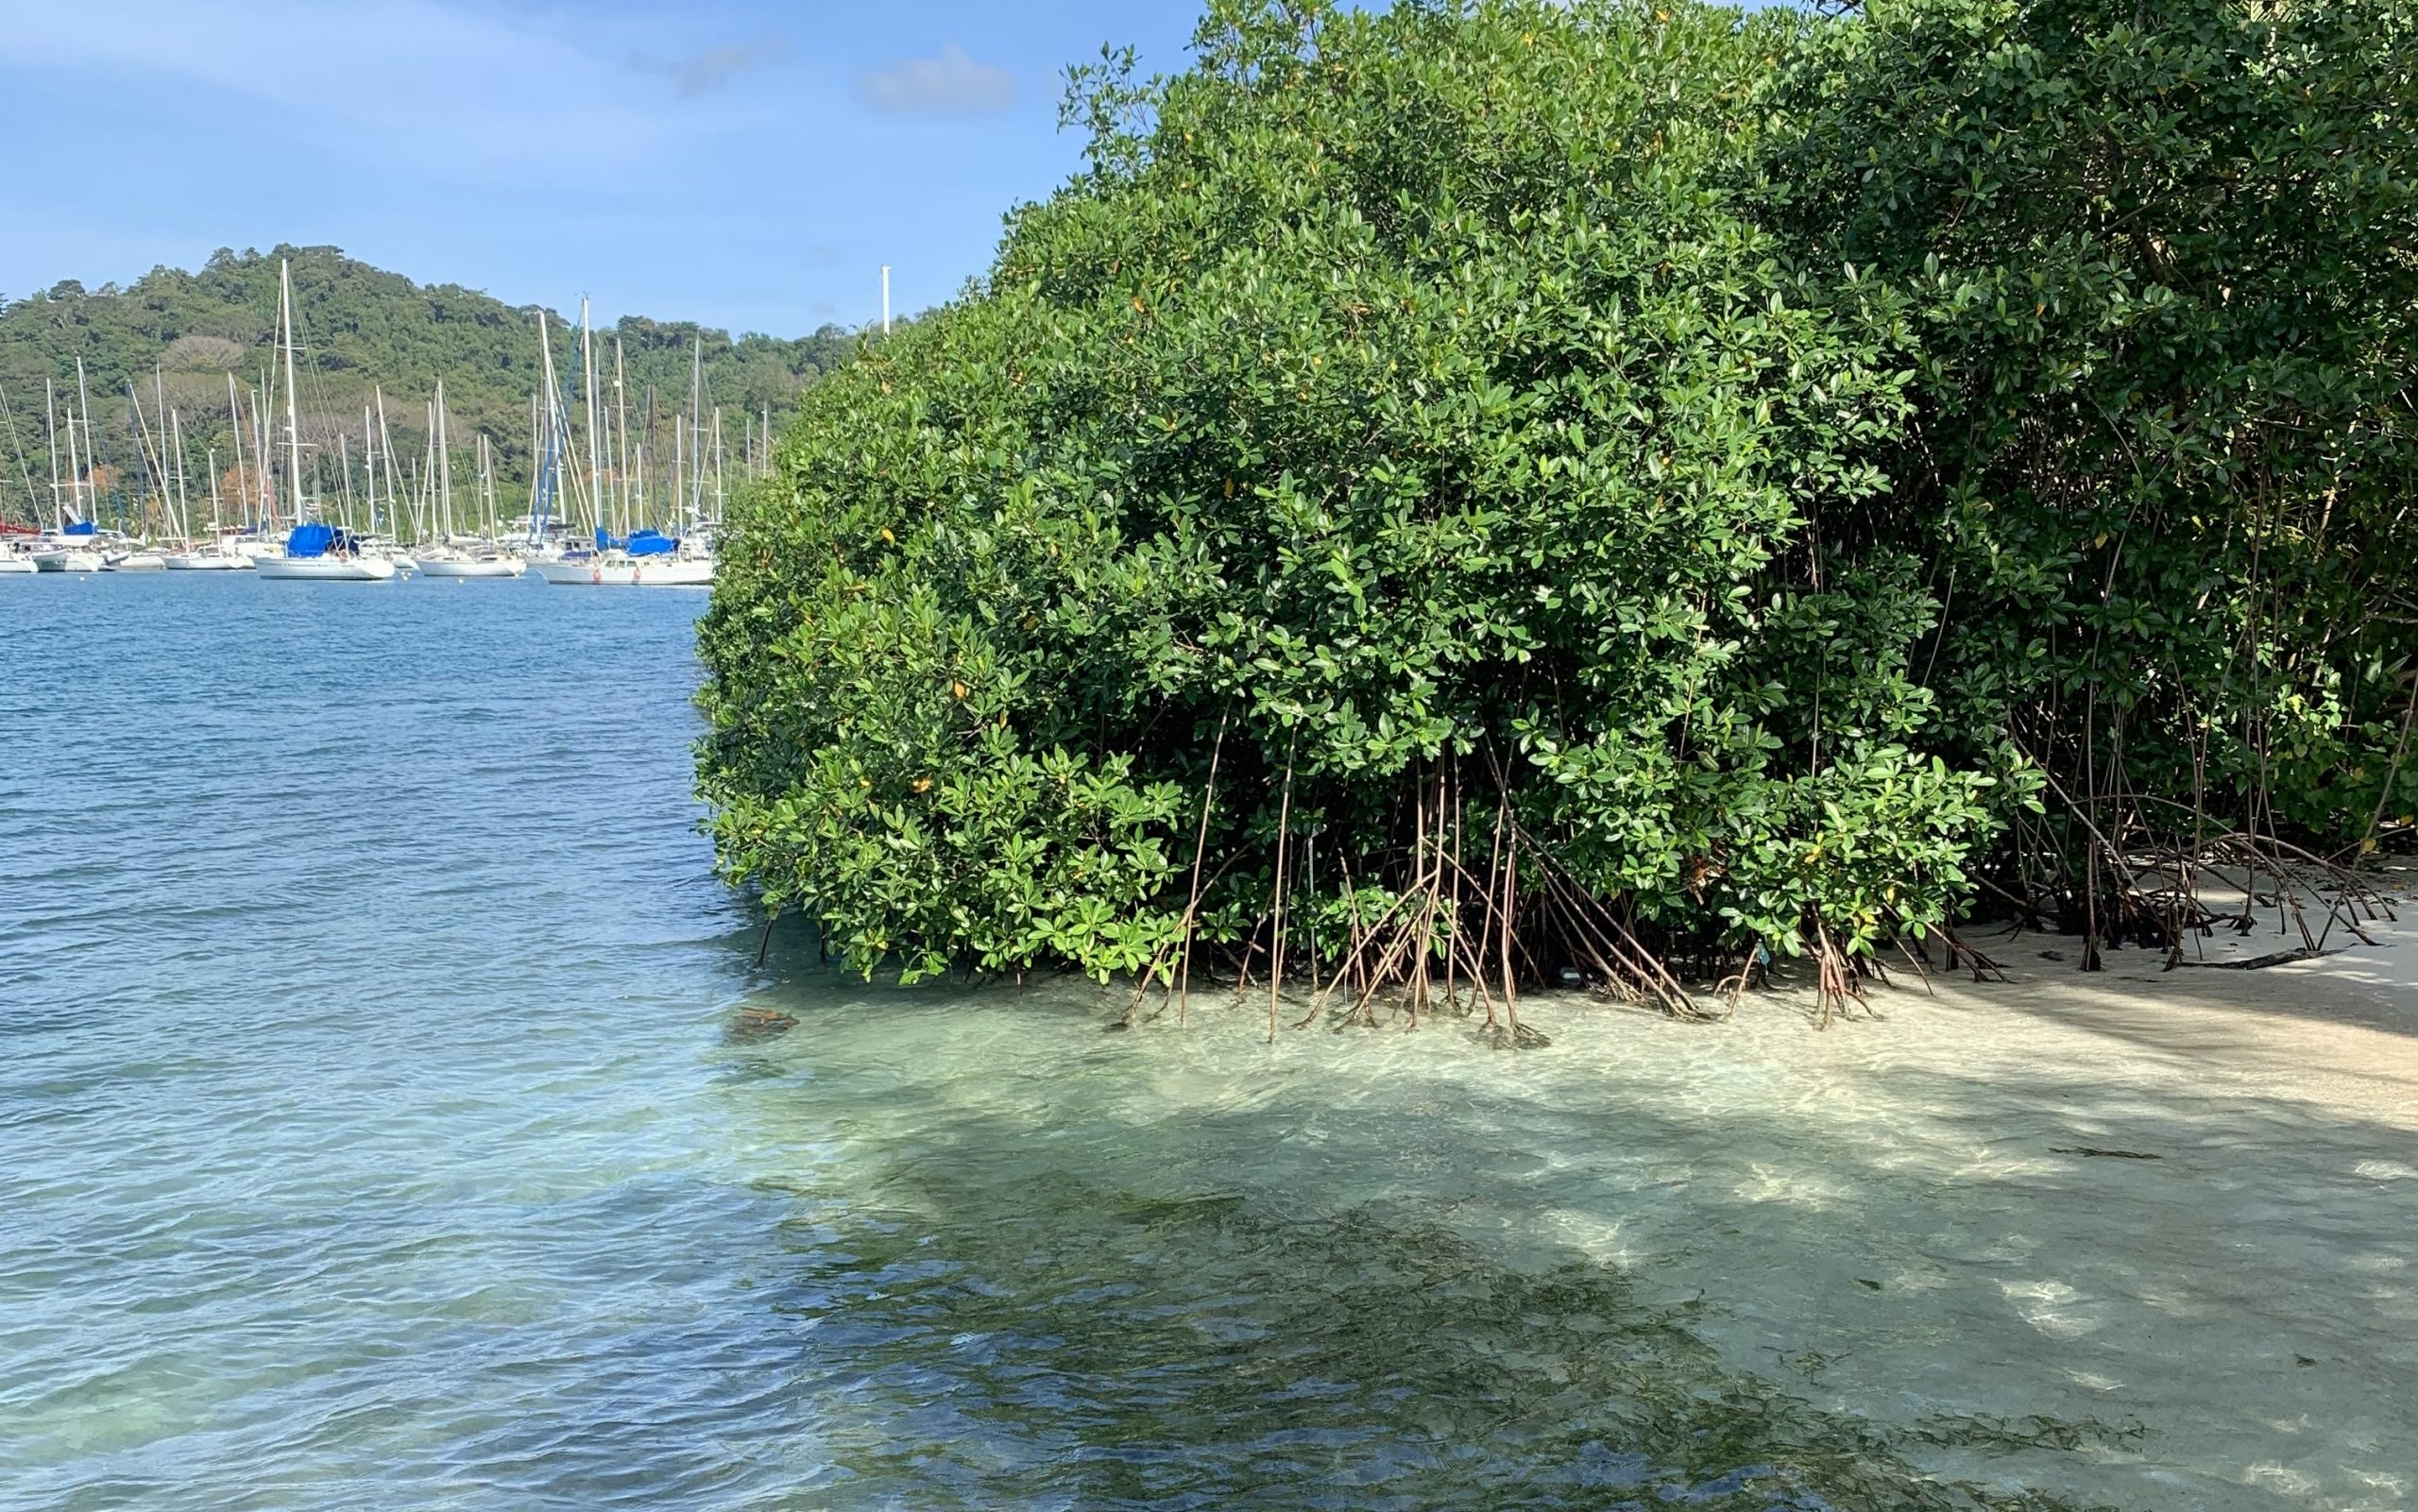 Mangrove and seagrass habitats in Puerto Lindo, Panama with the Linton Bay Marina in the distance.